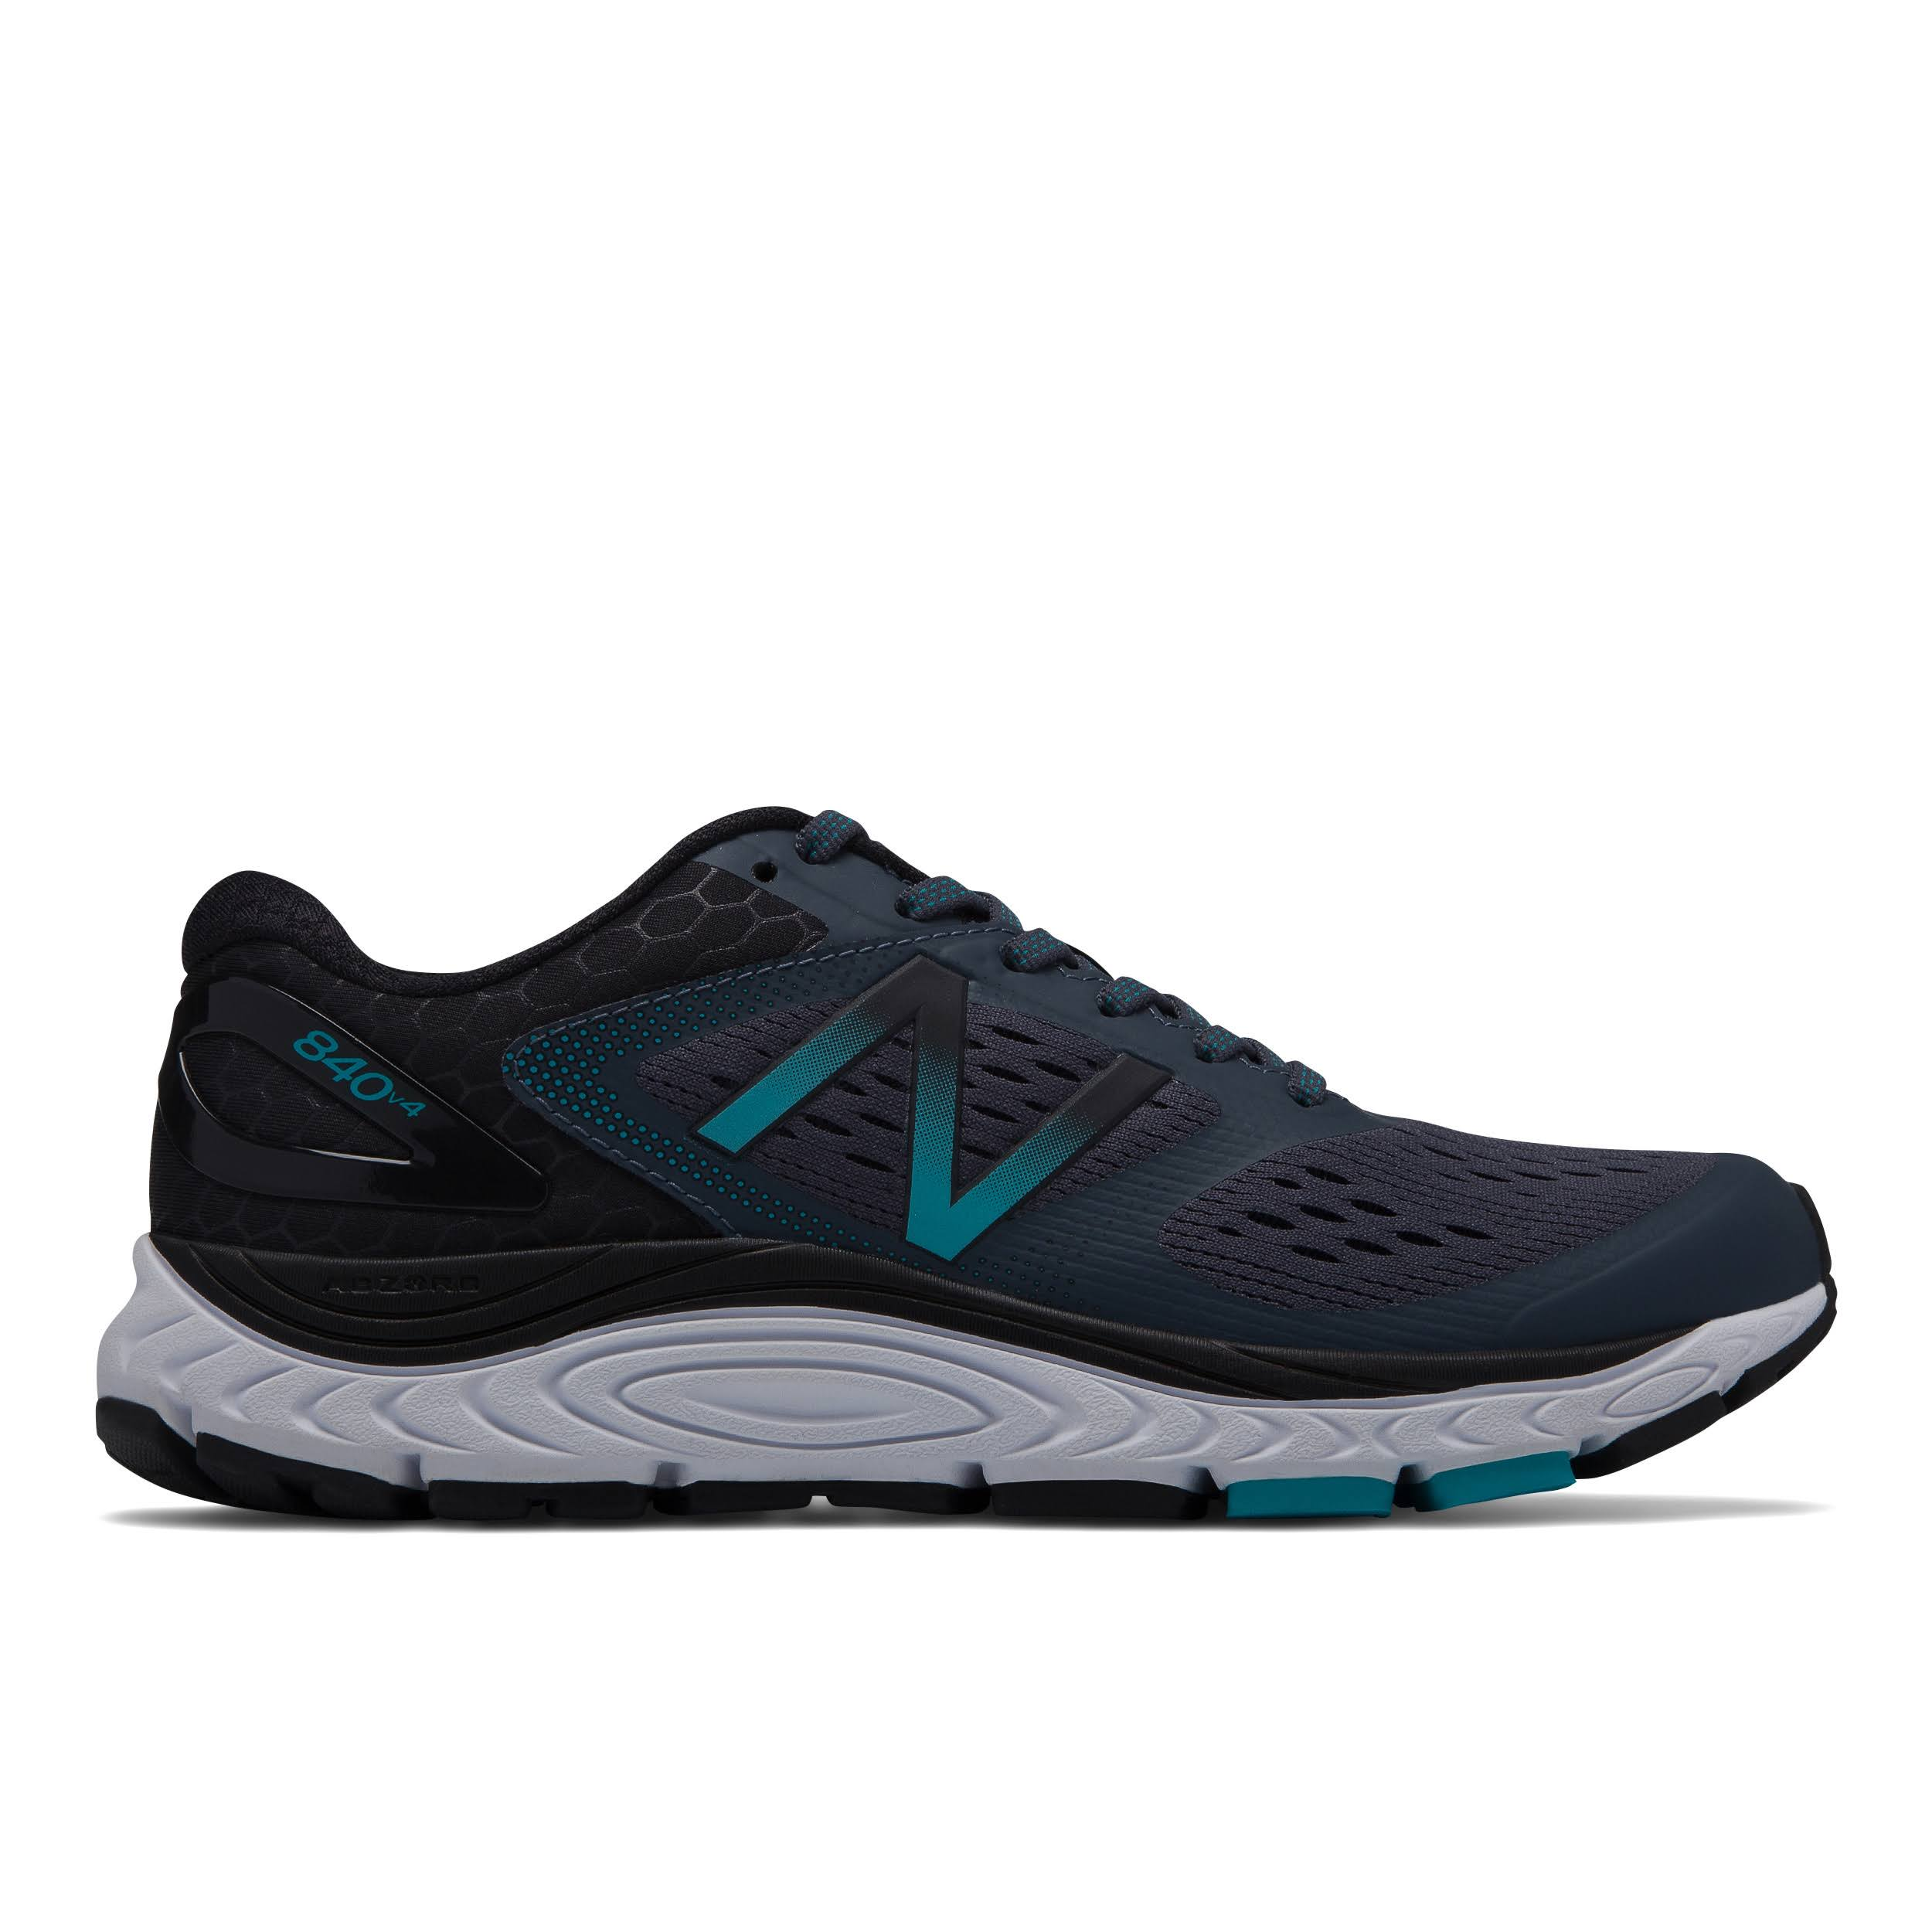 New Balance 840v4 Shoe - Women's Running